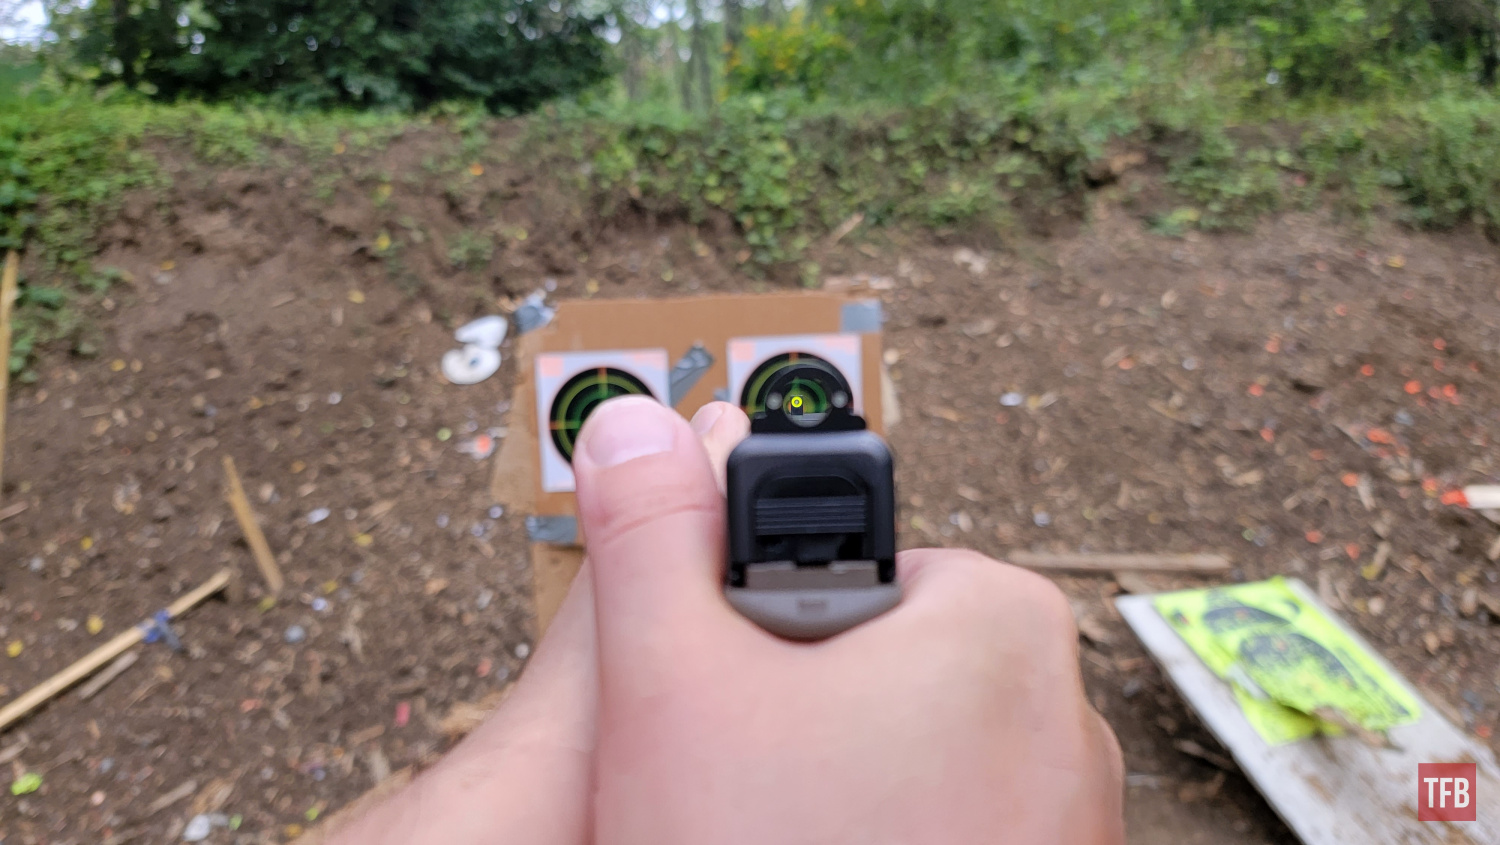 TFB Review: Ameriglo Ghost Ring Sights - Are These Things Even Useful?